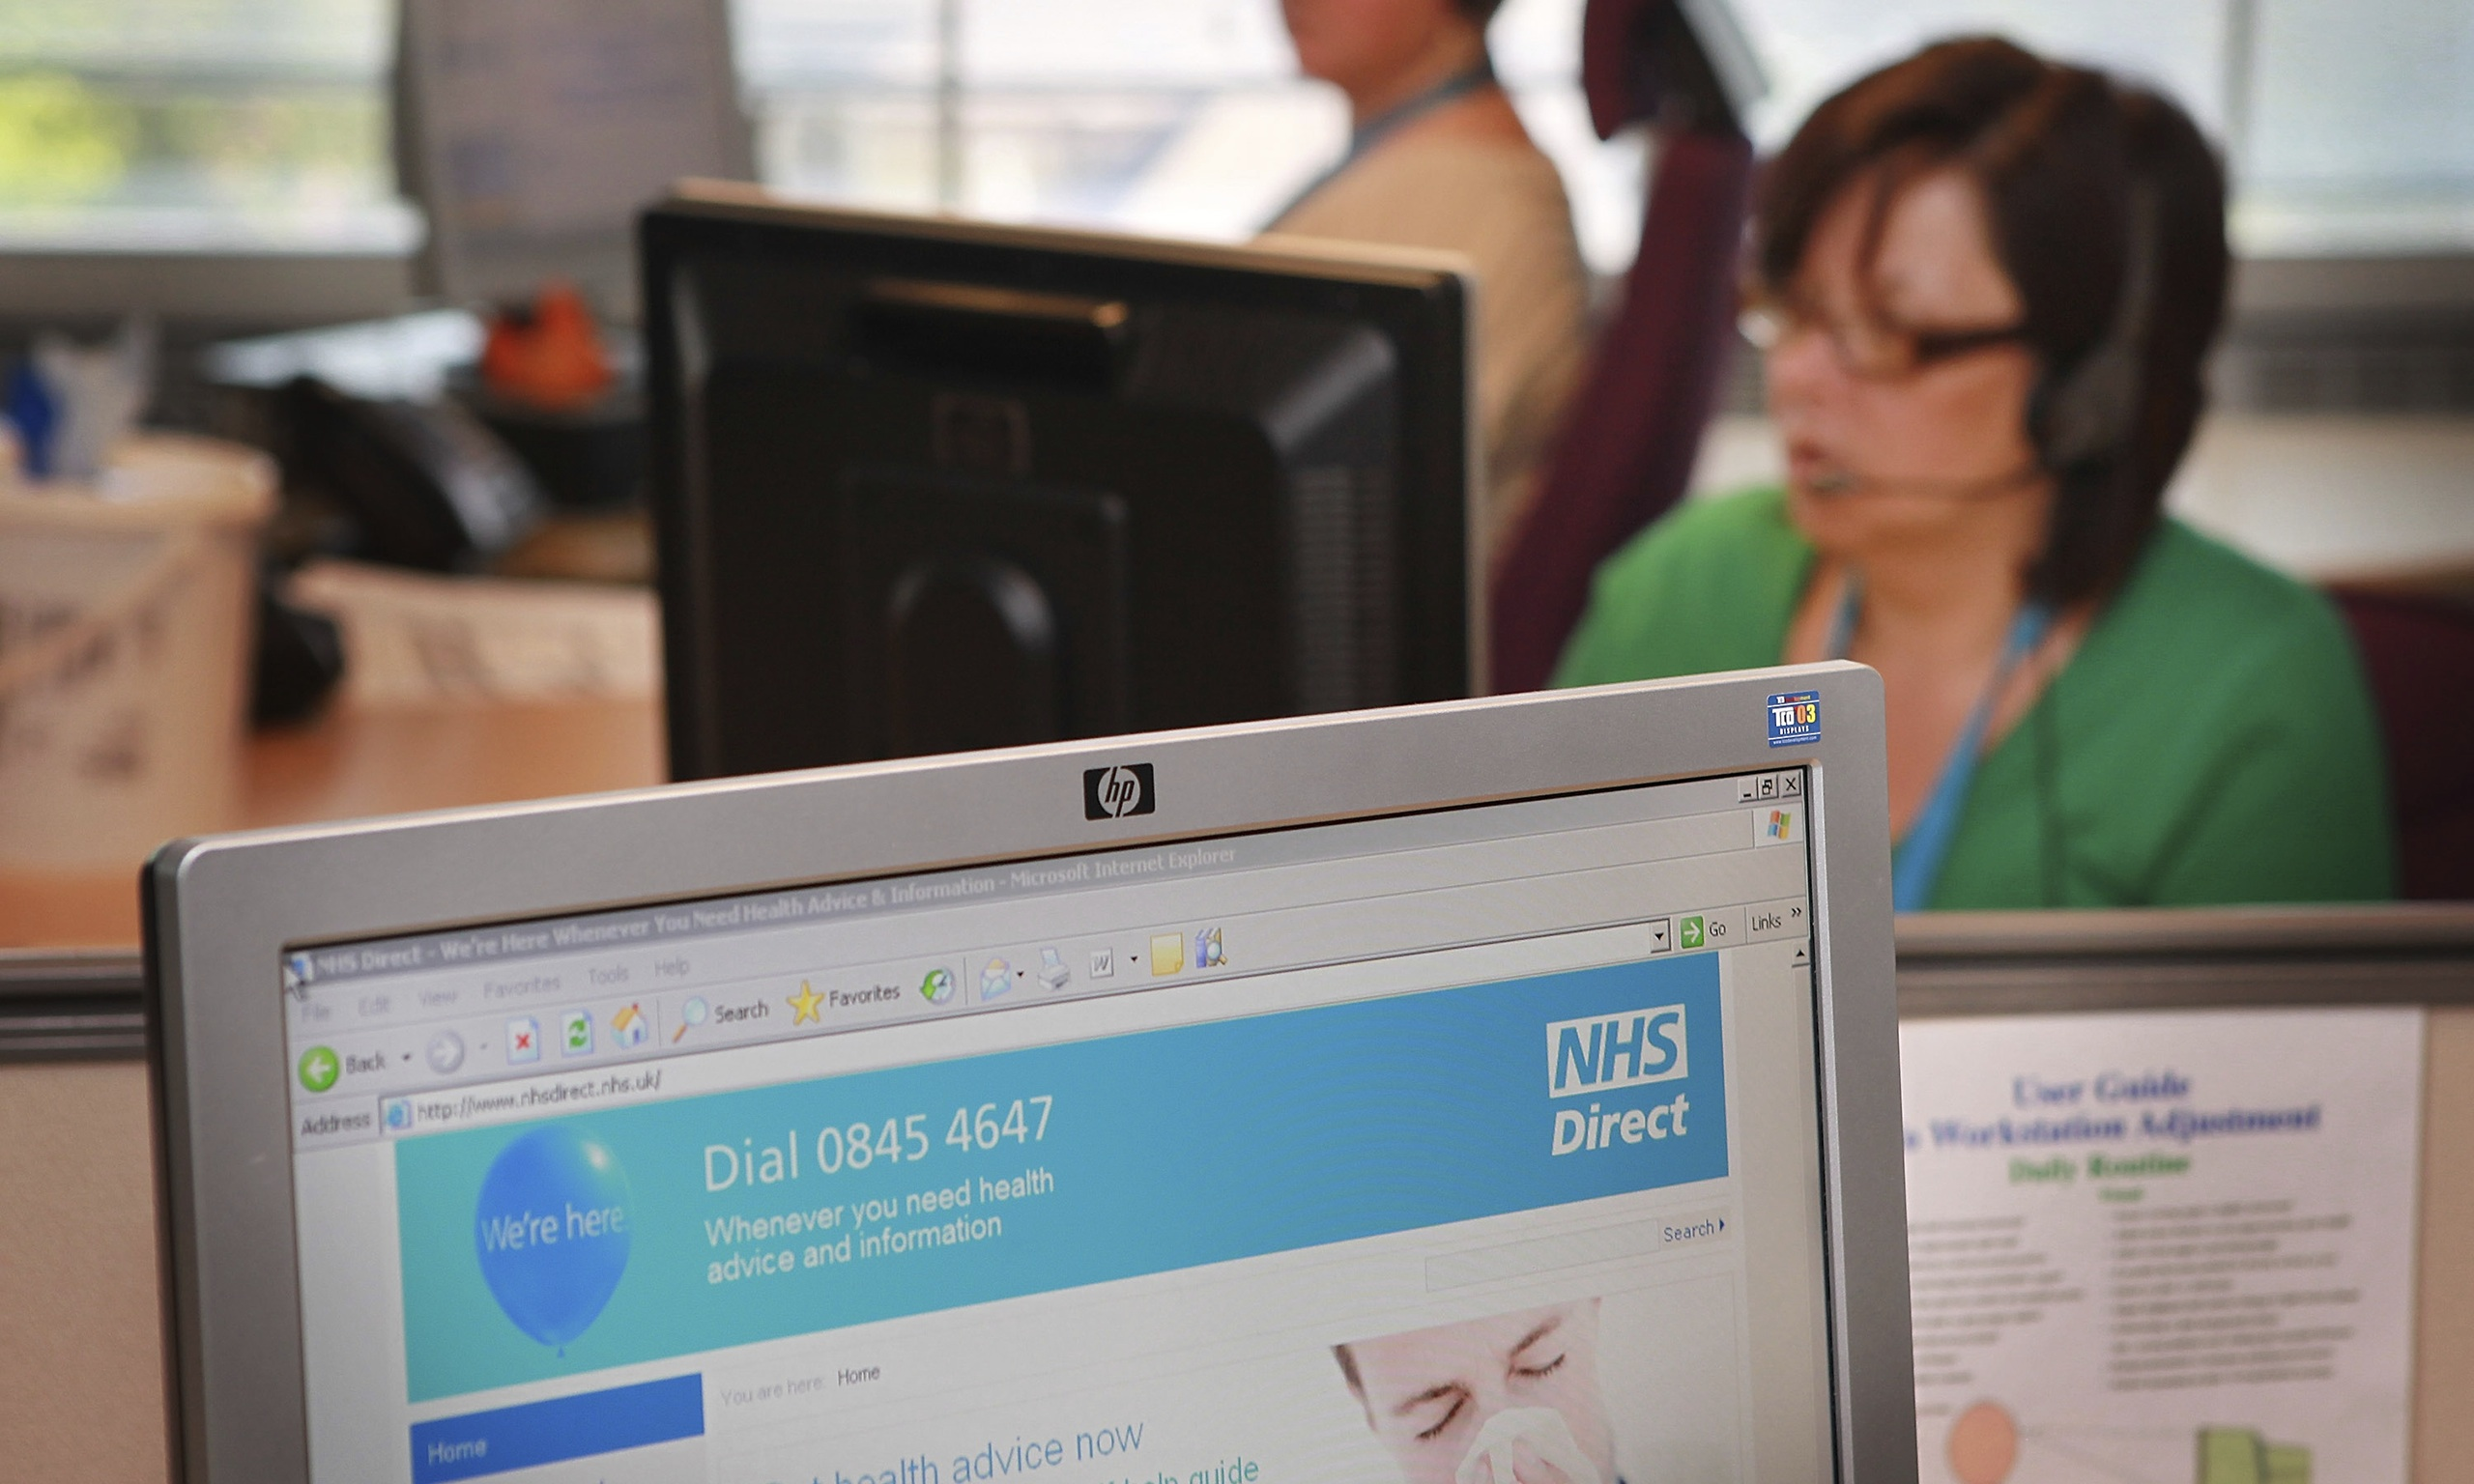 NHS Directs closure raises concerns about consistency of care  Society  The Guardian